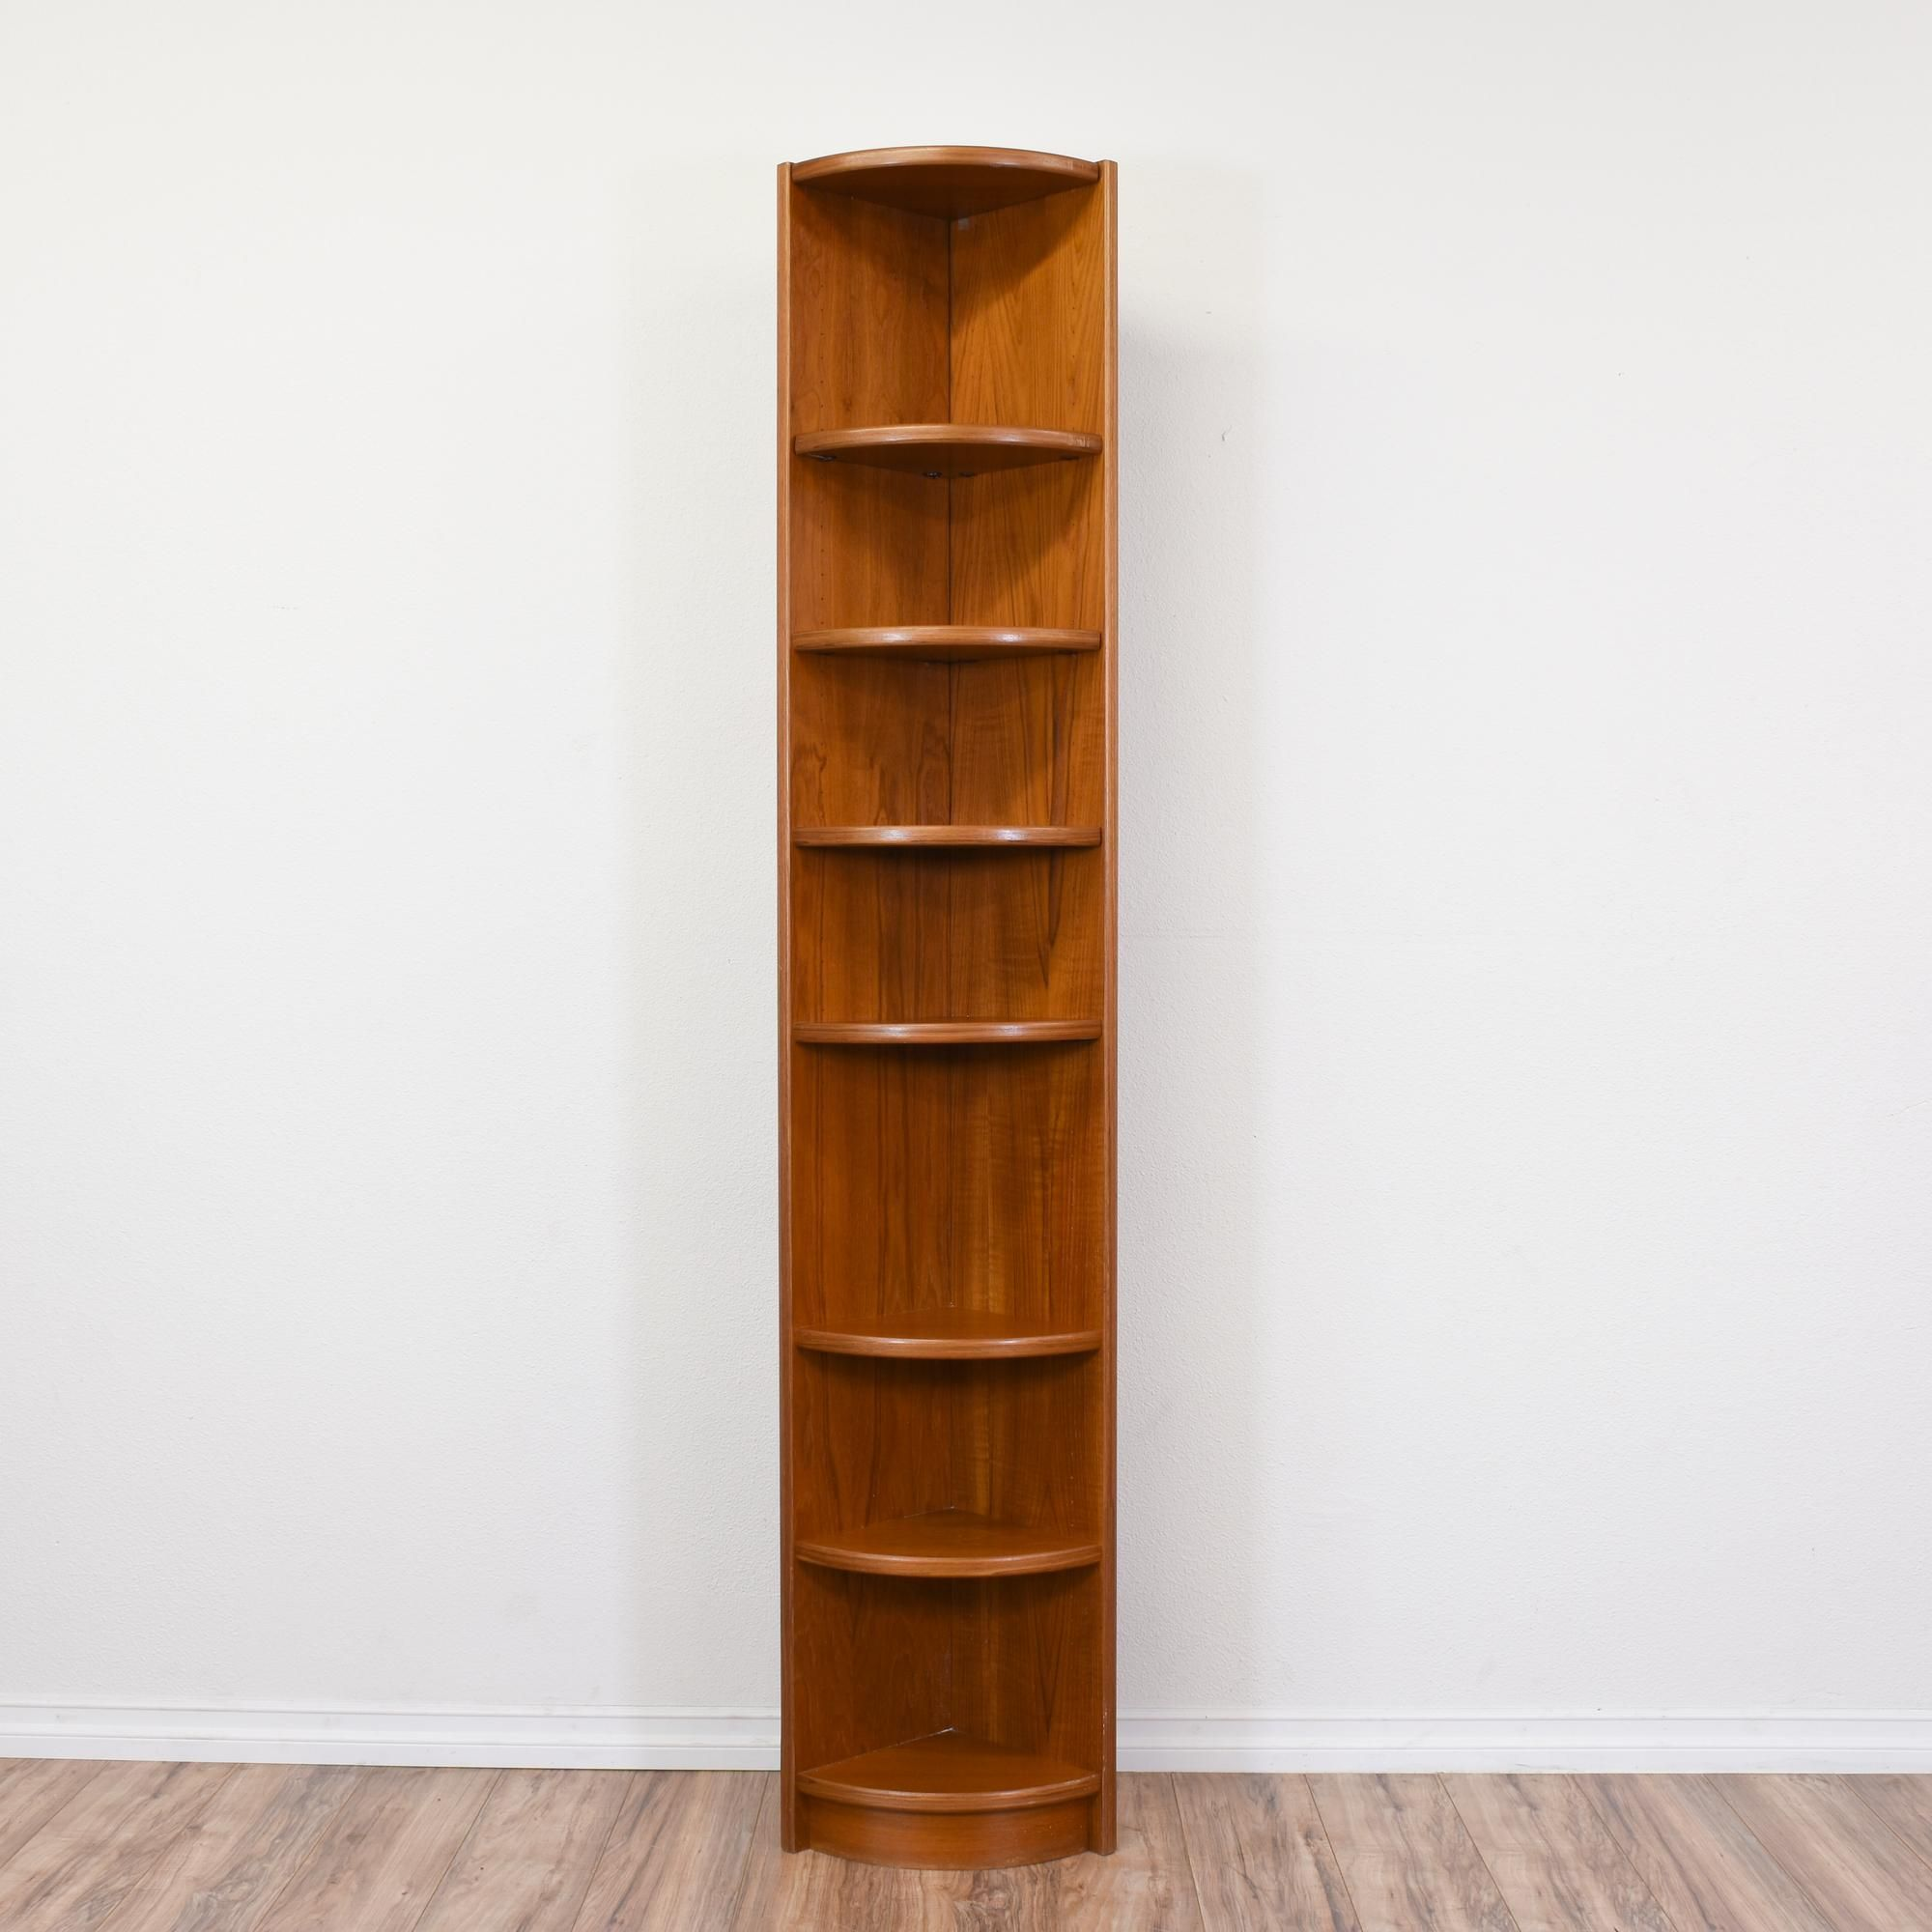 This Bookcase Is In Great Condition With 6 Curved Shelves And A Tall Narrow Design Sleek Mid Century Modern